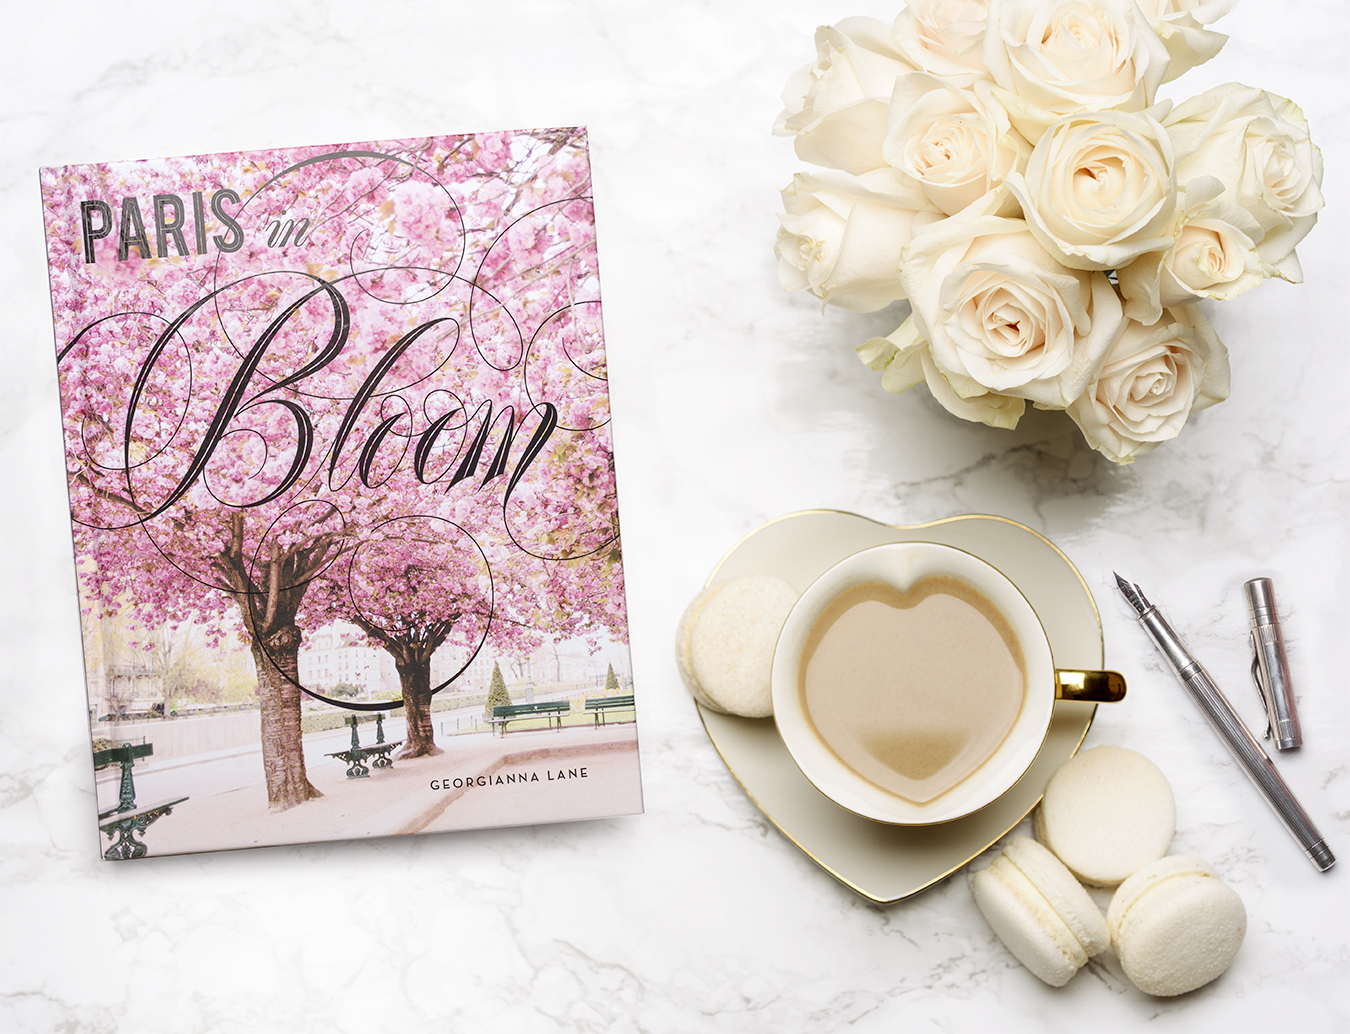 Paris in Bloom by Georgianna Lane